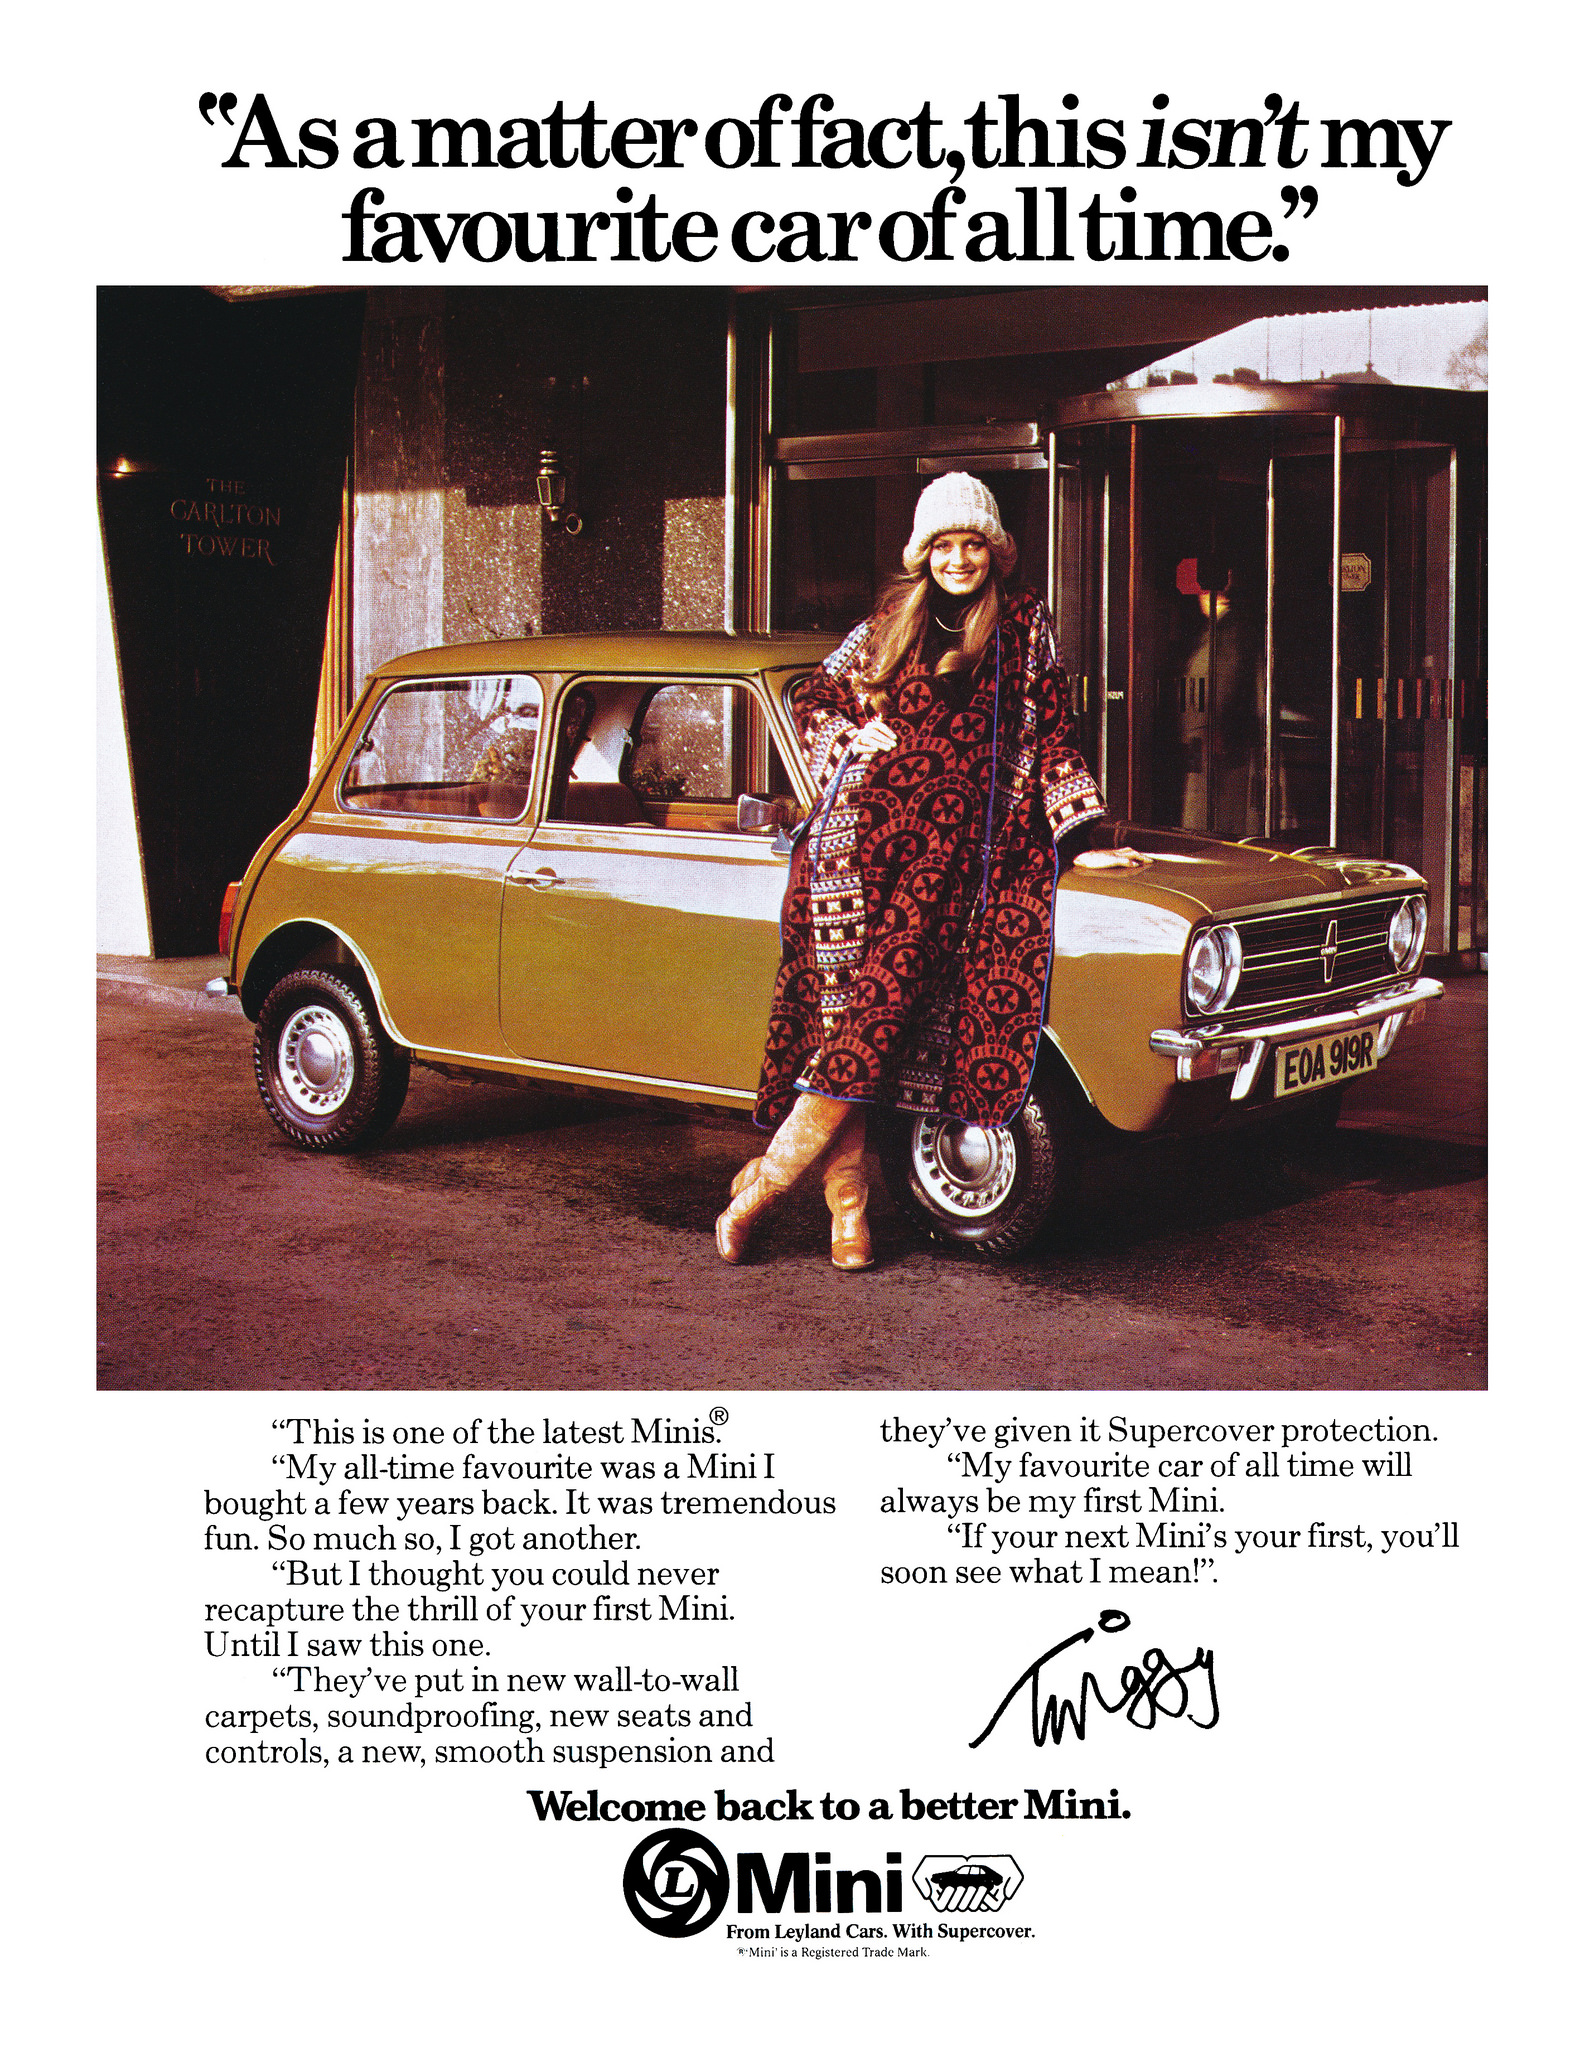 Mini ad with Twiggy from 1977.